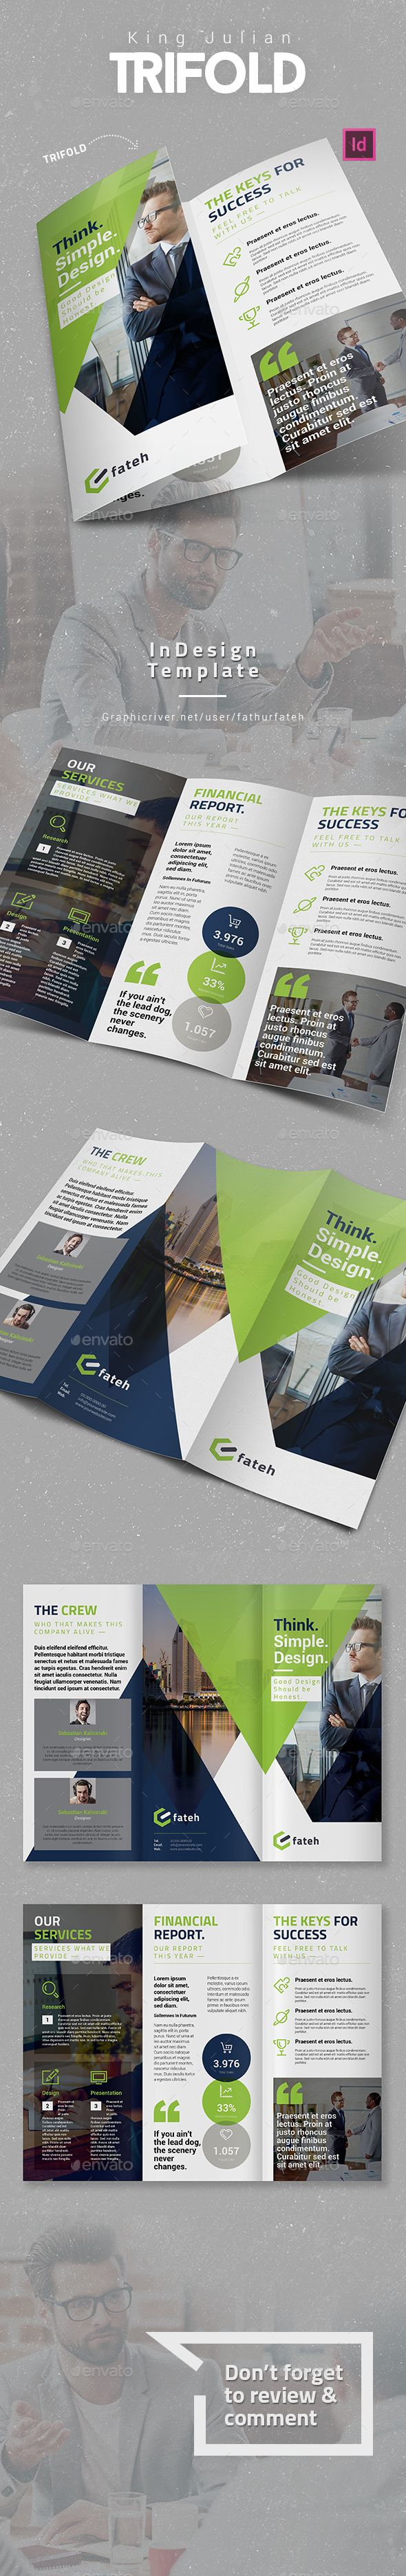 Corporate Trifold Brochures Template InDesign INDD